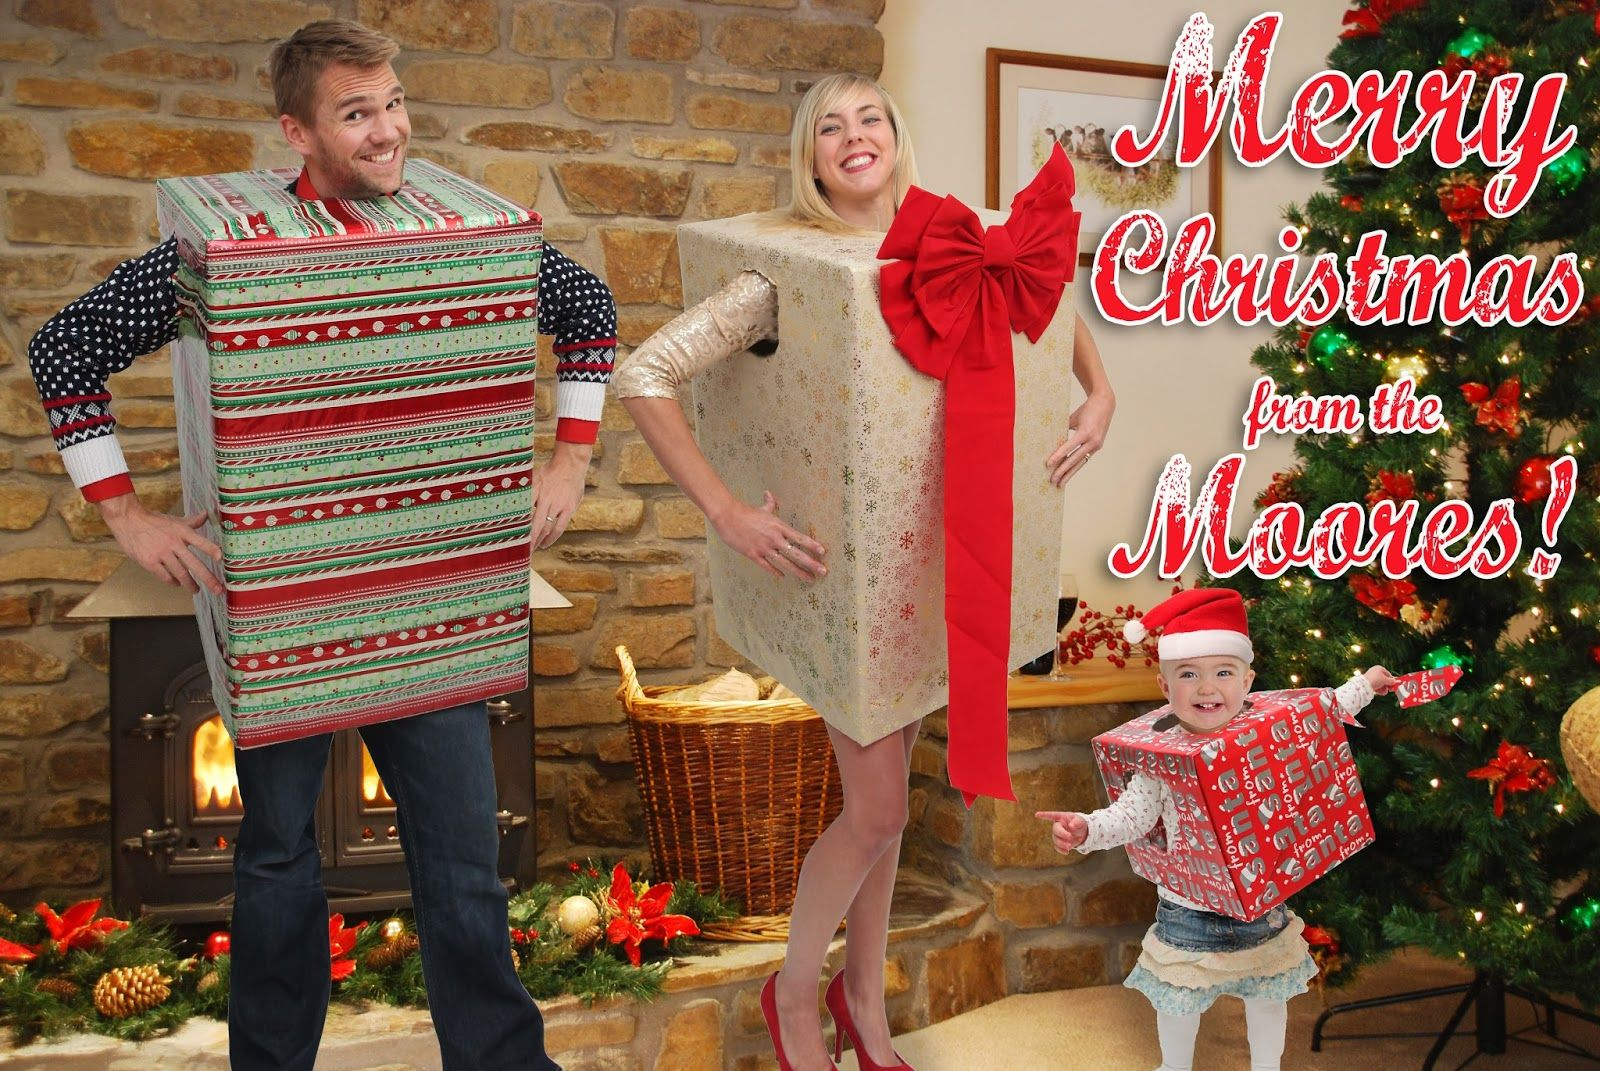 http://www.jakesblog.co.uk/2013/11/the-moores-cheesy-christmas-photos.html